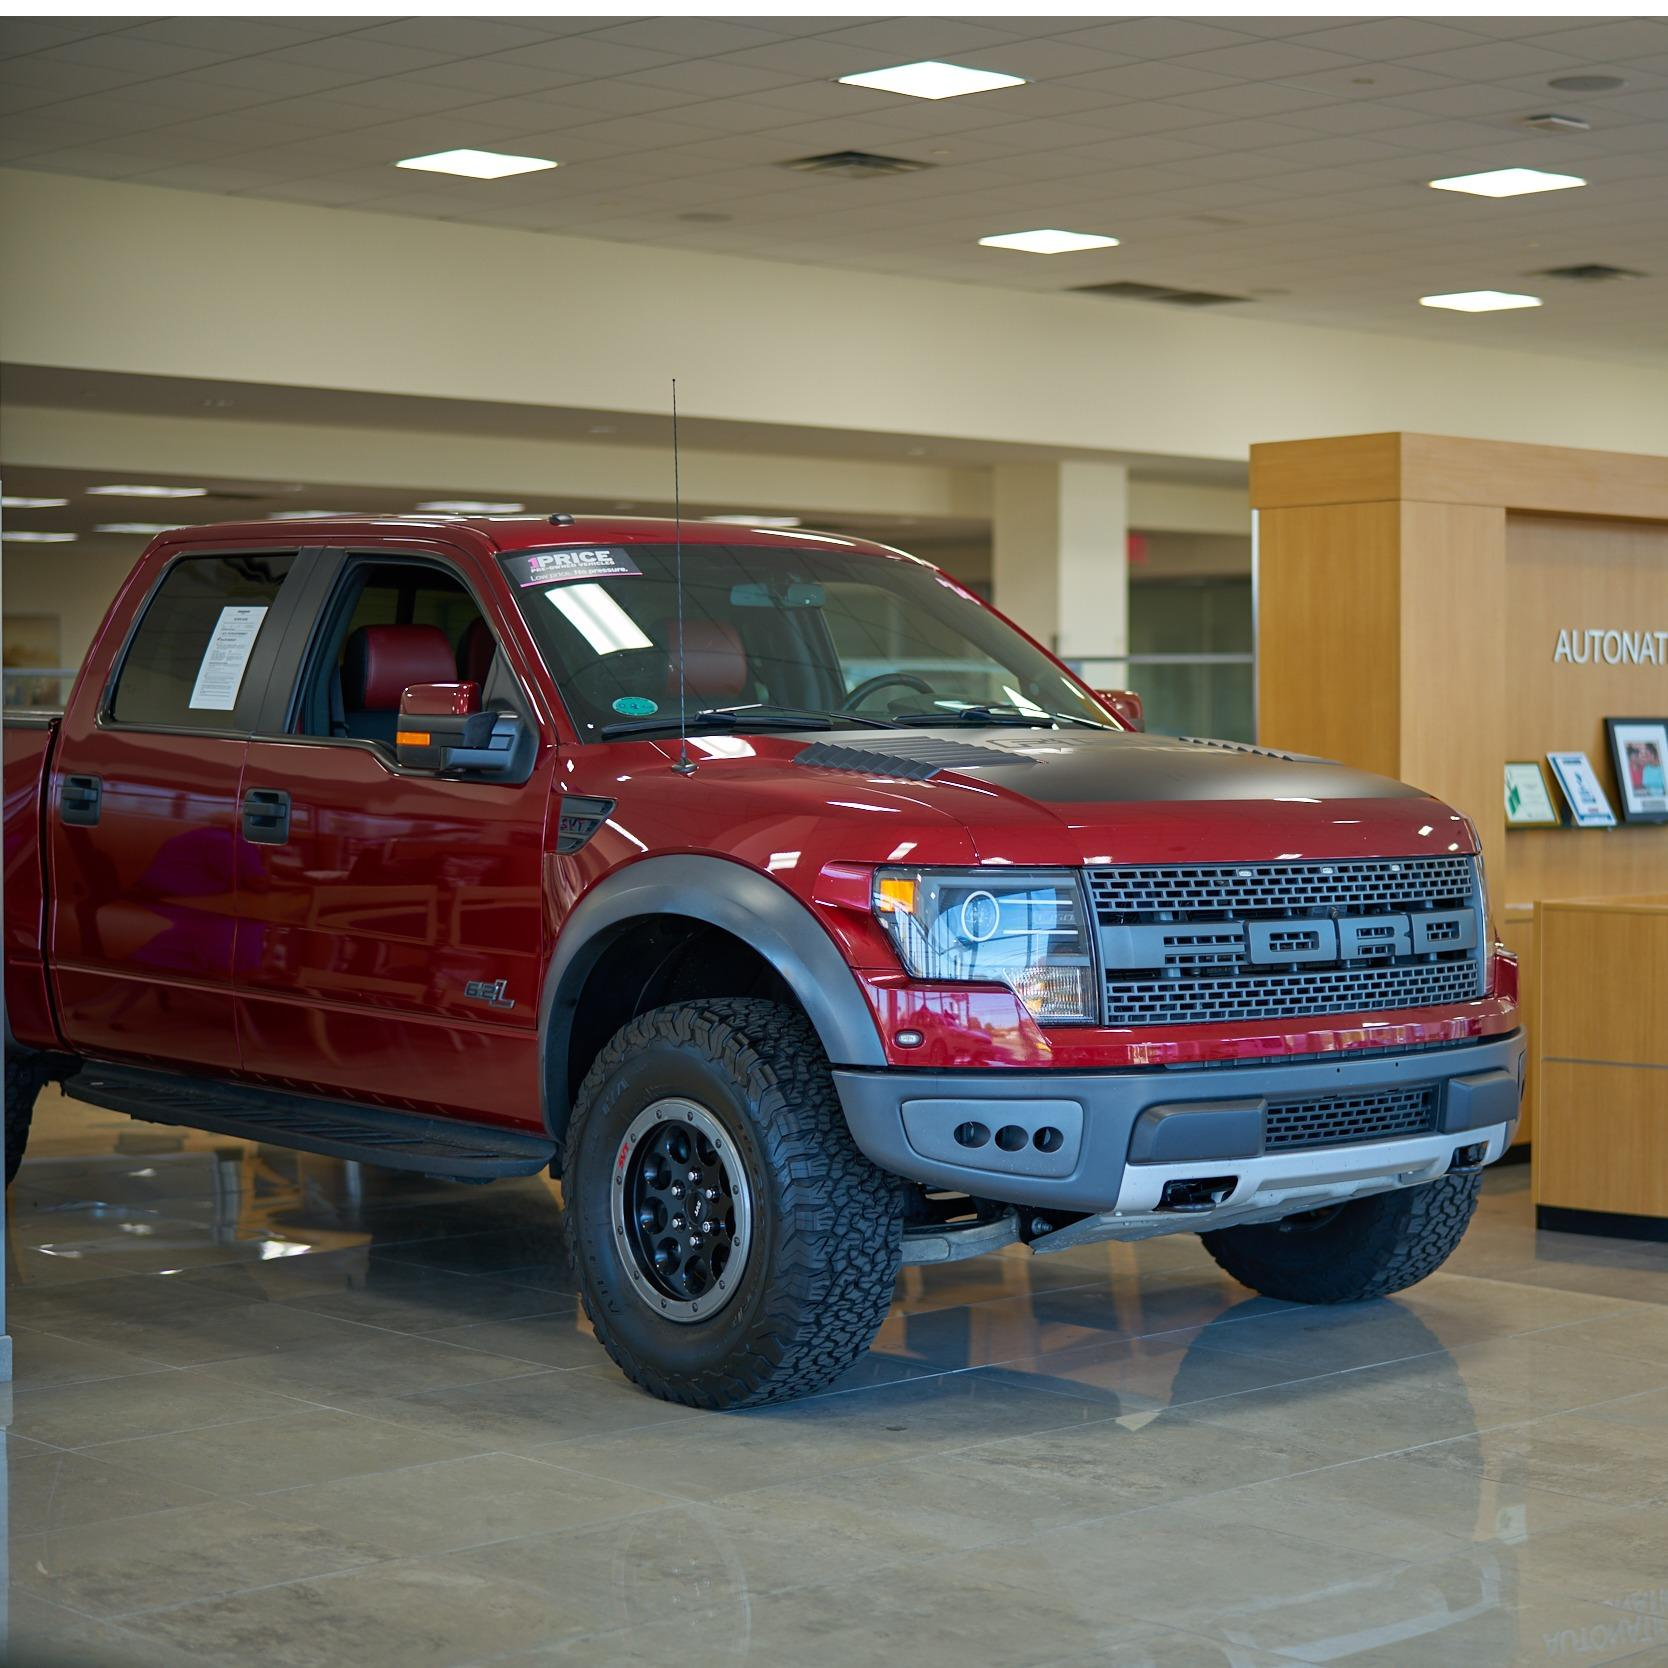 Autonation Honda Thornton Road Home: AutoNation Ford Wolfchase At 7925 Stage Road, Memphis, TN